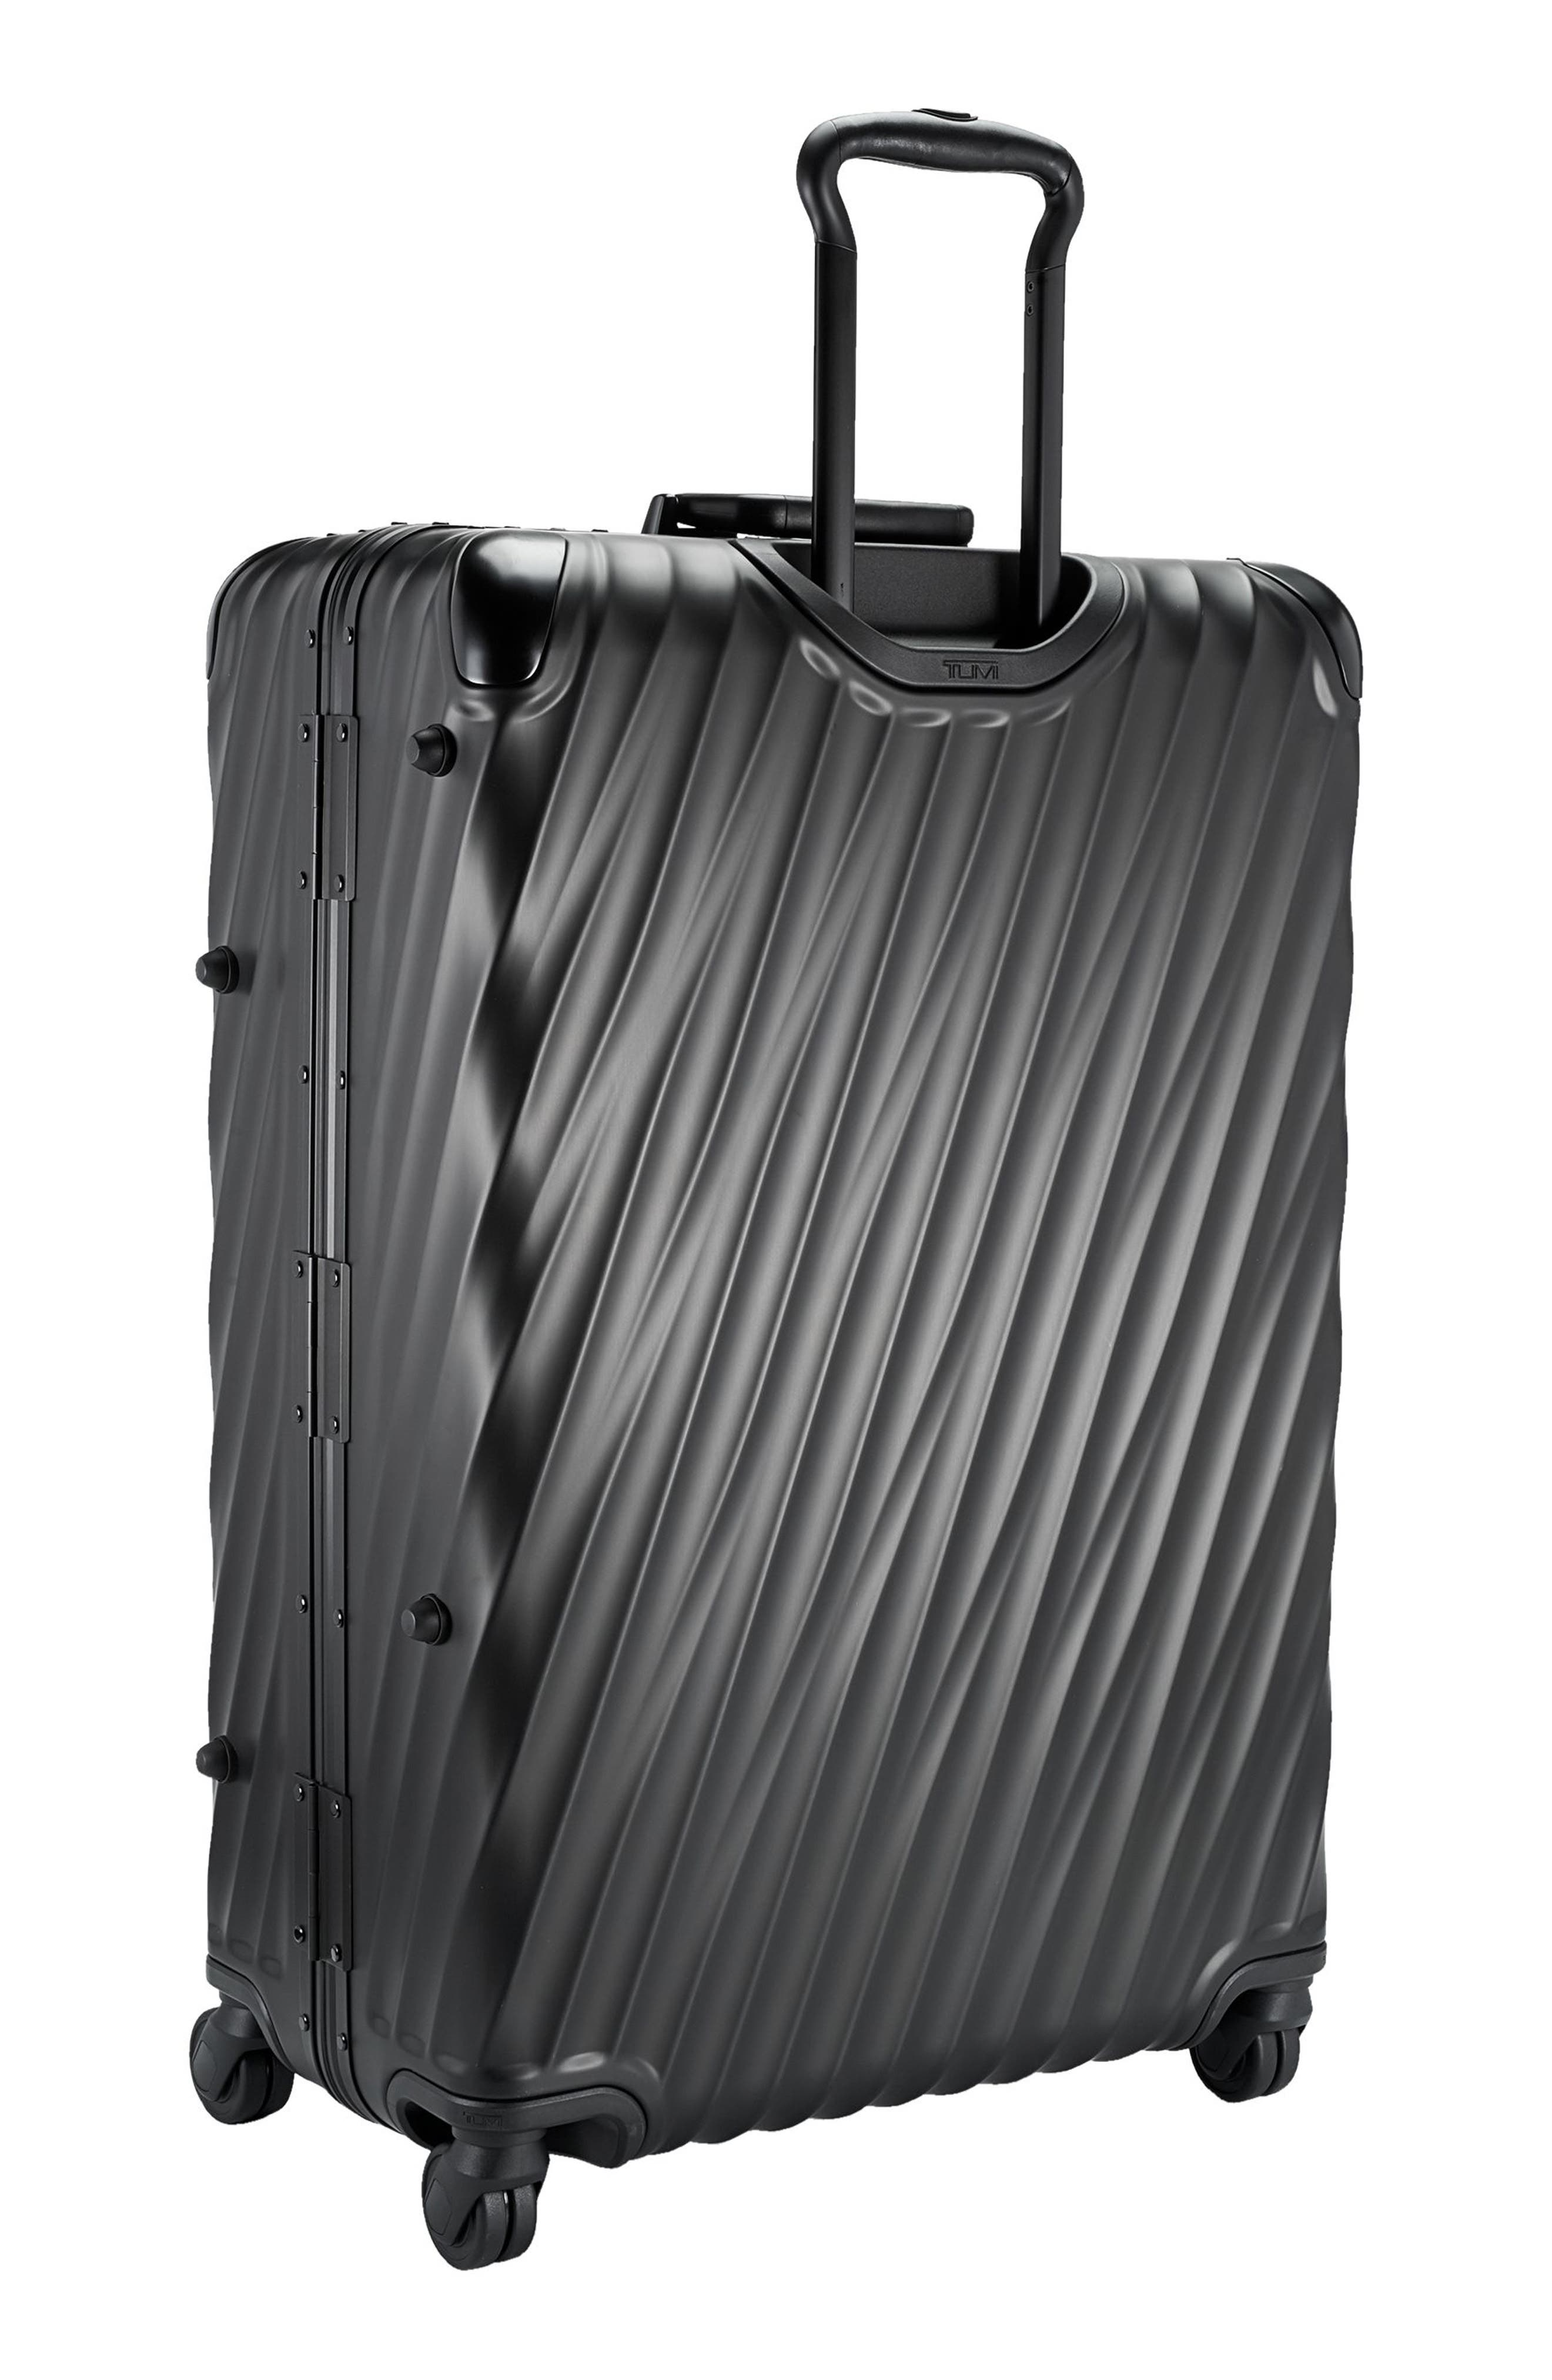 19 Degree 31-Inch Extended Trip Wheeled Aluminum Packing Case,                             Alternate thumbnail 4, color,                             MATTE BLACK